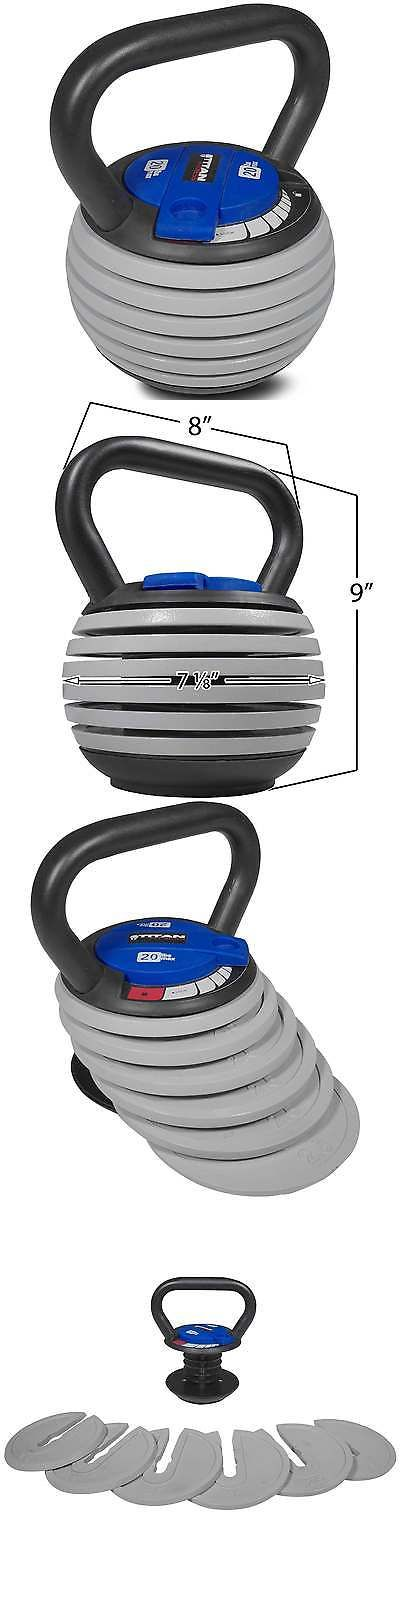 Kettlebells 179814: Titan Fitness 5 - 20 Lb Adjustable Kettlebell Weight Lifting Swing Workout -> BUY IT NOW ONLY: $65 on eBay!